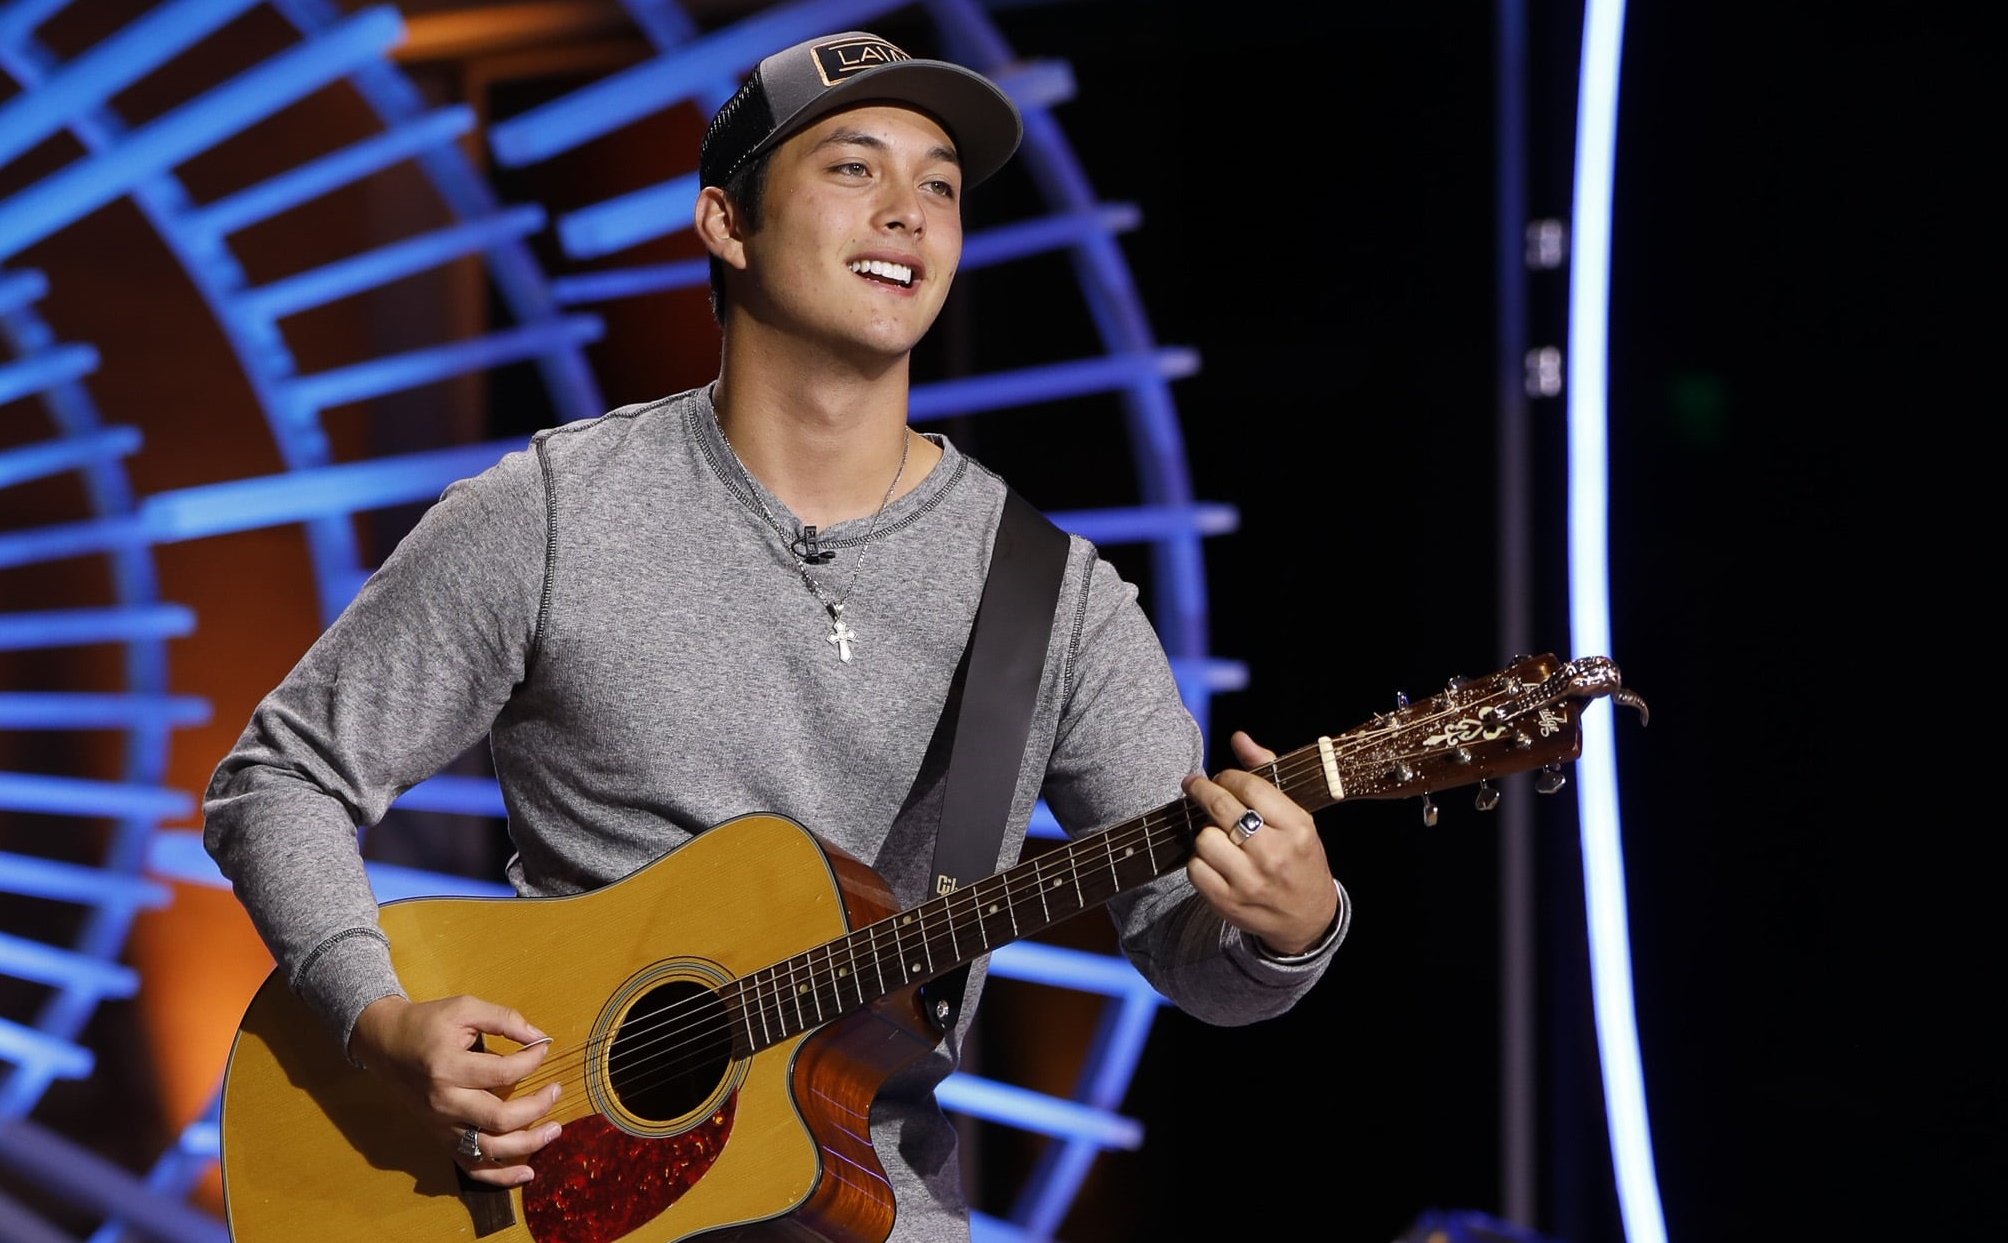 Gay american idol contestant sings in front of parents for first time blows the judges away